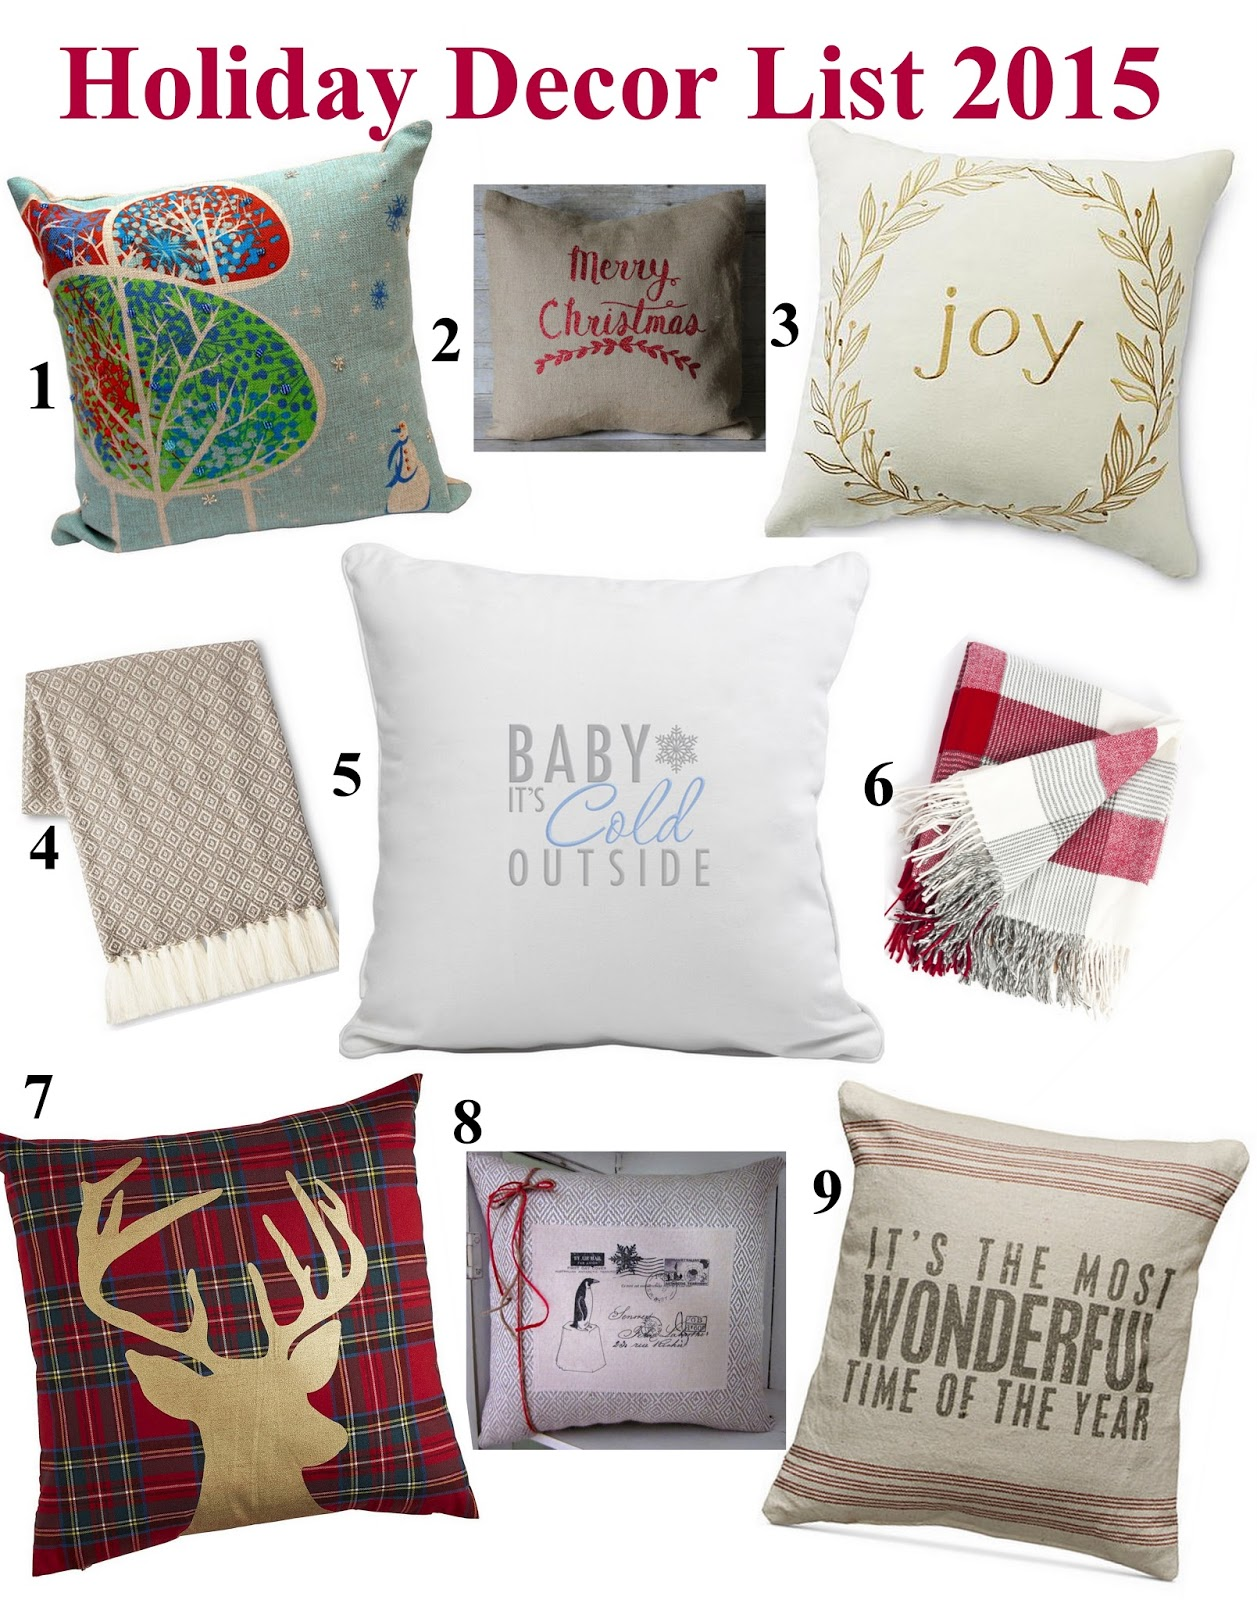 Home goods decorative pillow - Joy Typography Holiday Decor Christmas Decorations Merry And Bright